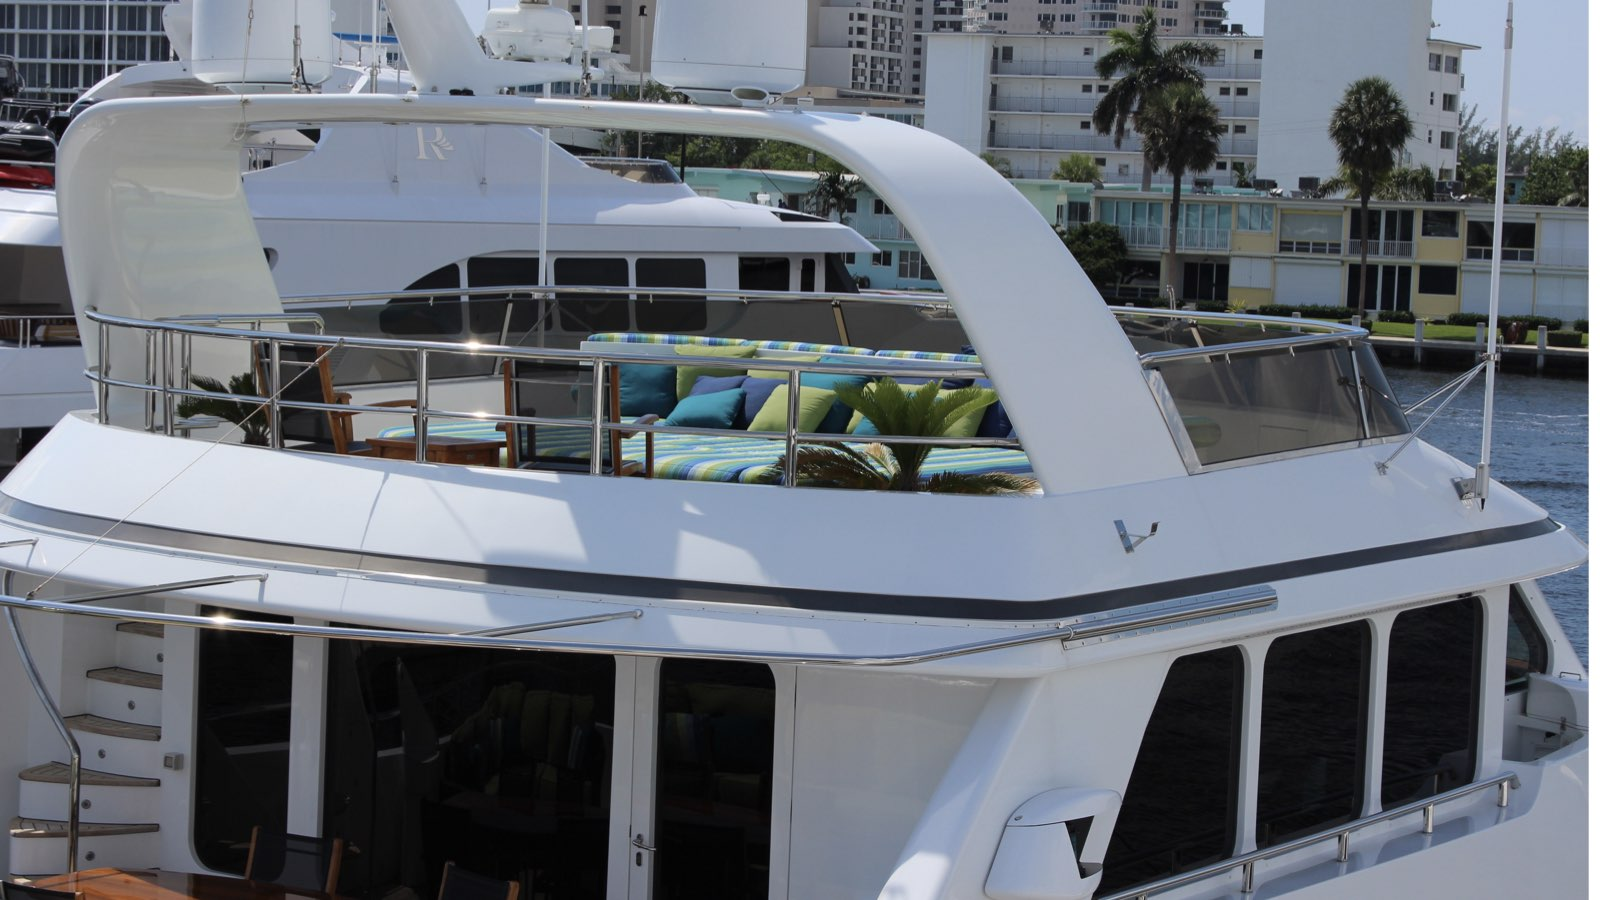 Yacht Conrad 89 - photo 20 of 24